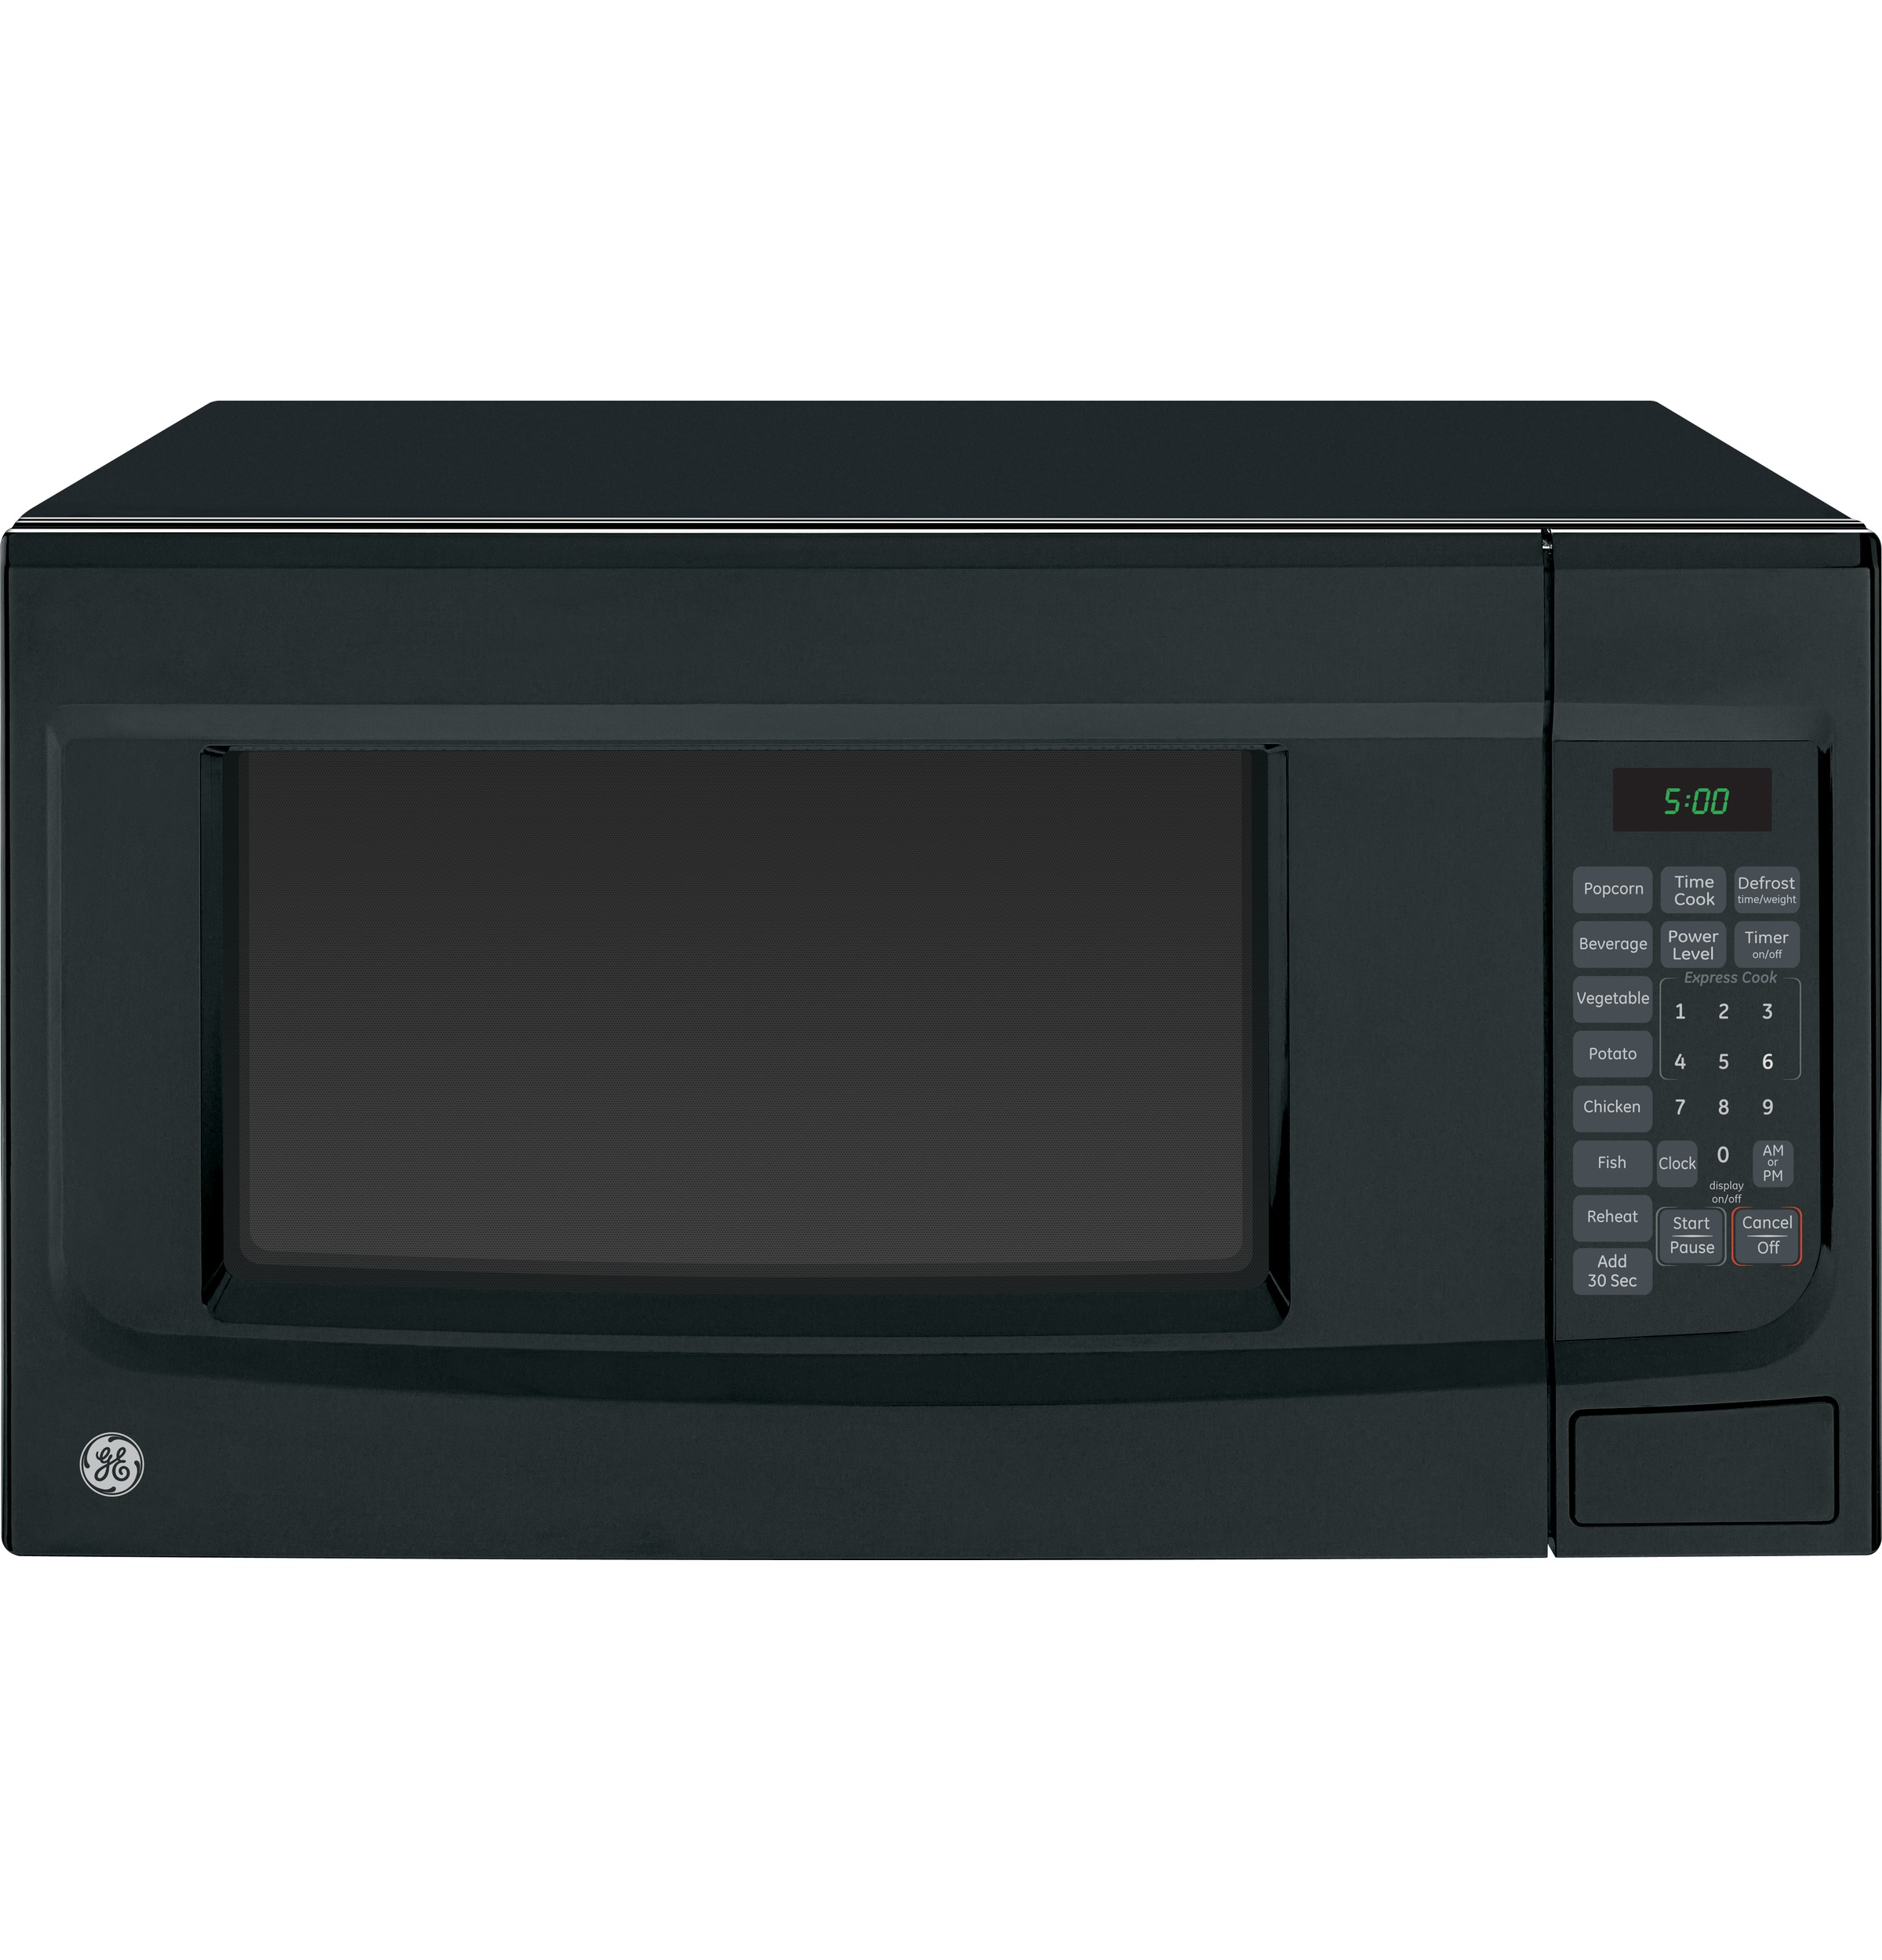 microwave at hometown brand center in